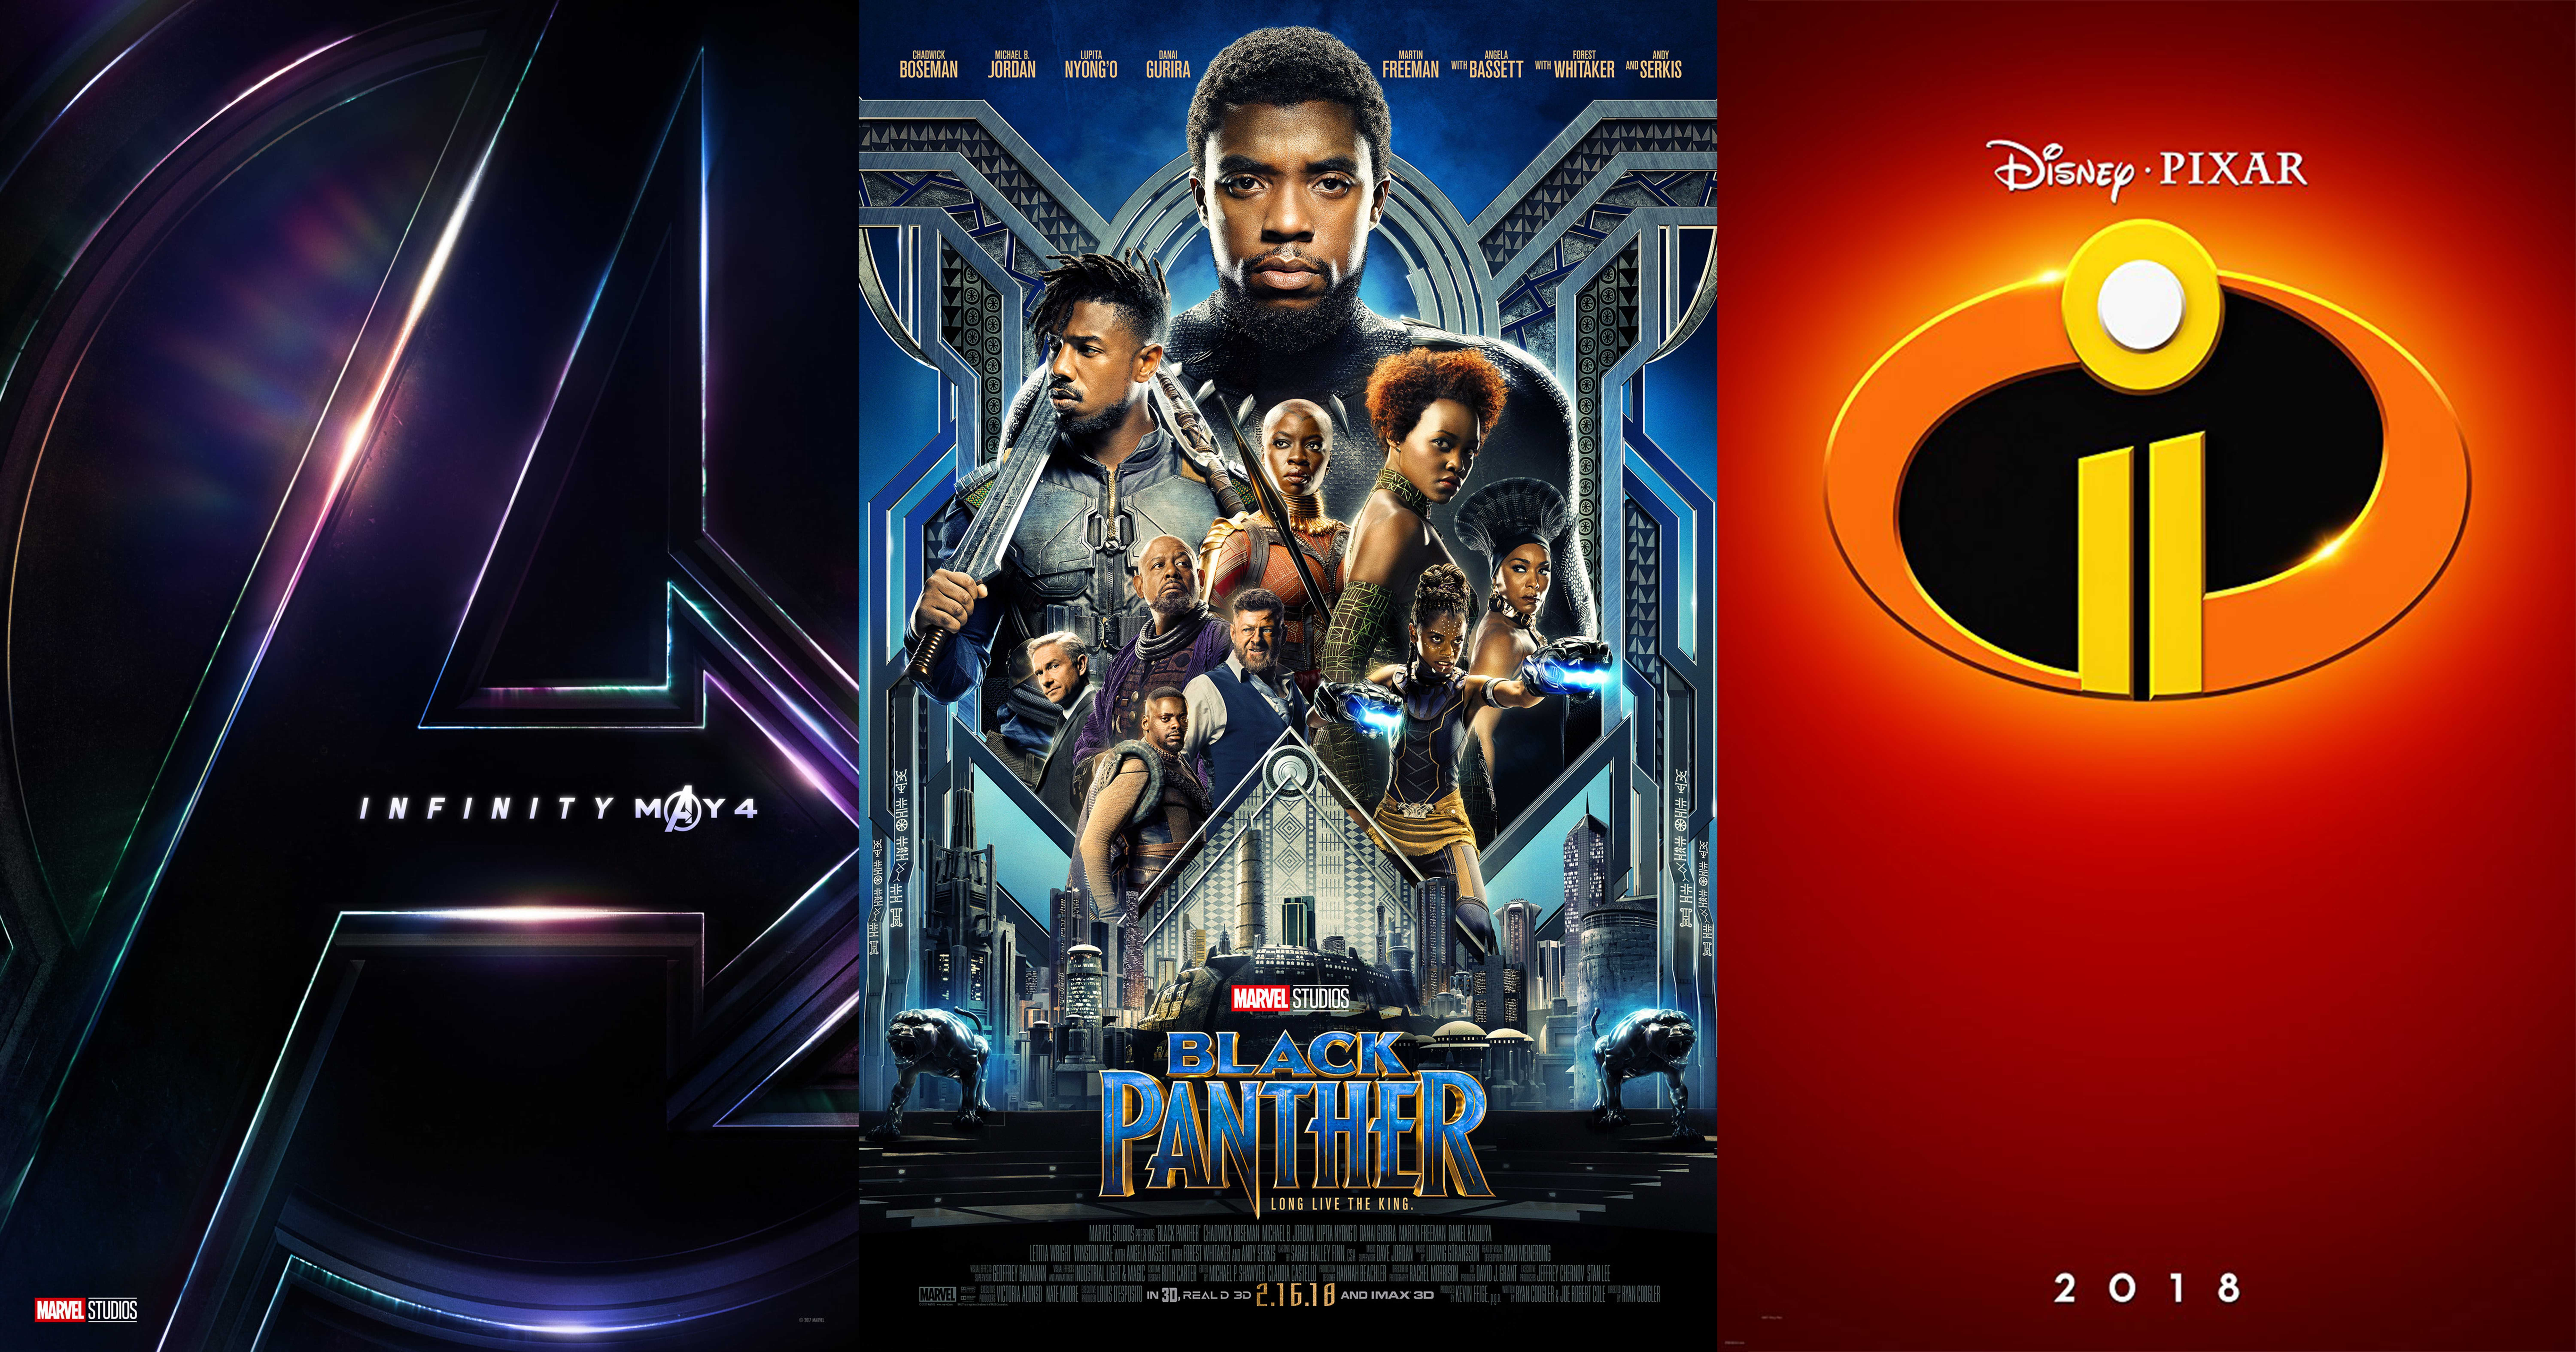 DC, Disney, Dinosaurs: Top 10 anticipated films of 2018